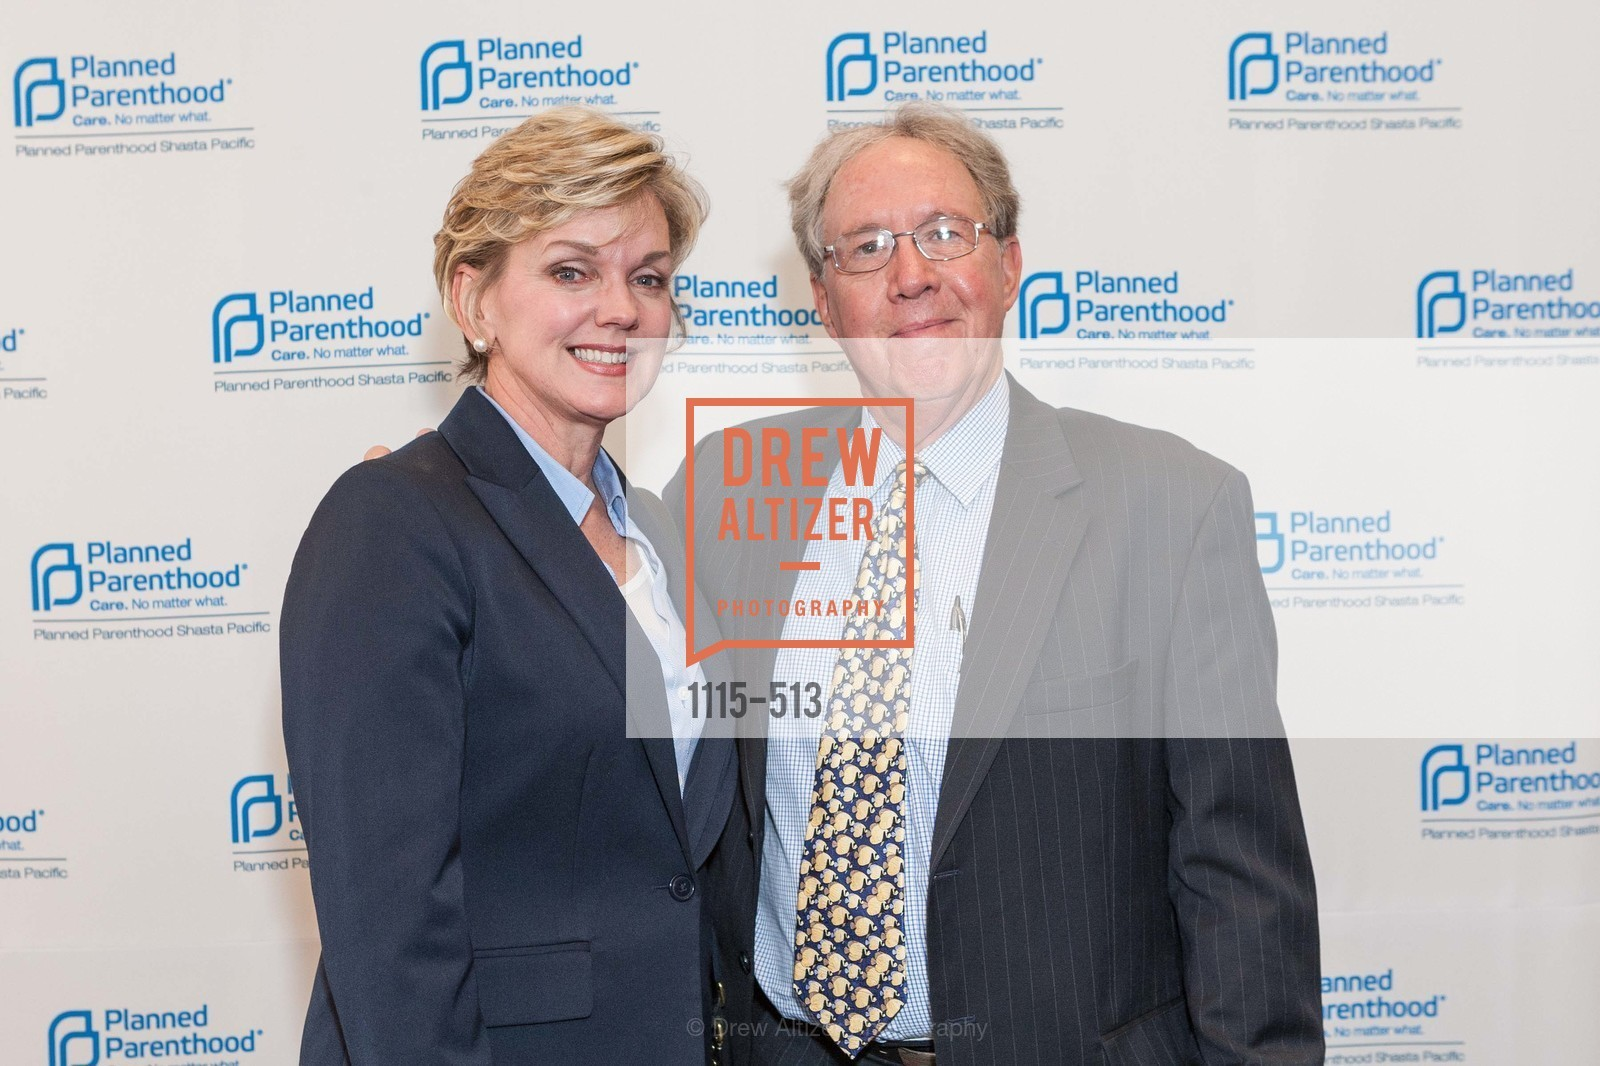 Jennifer Granholm, Duane Kromm, PLANNED PARENTHOOD SHASTA PACIFIC Presents  Acts of Courage, US. US, April 10th, 2014,Drew Altizer, Drew Altizer Photography, full-service agency, private events, San Francisco photographer, photographer california